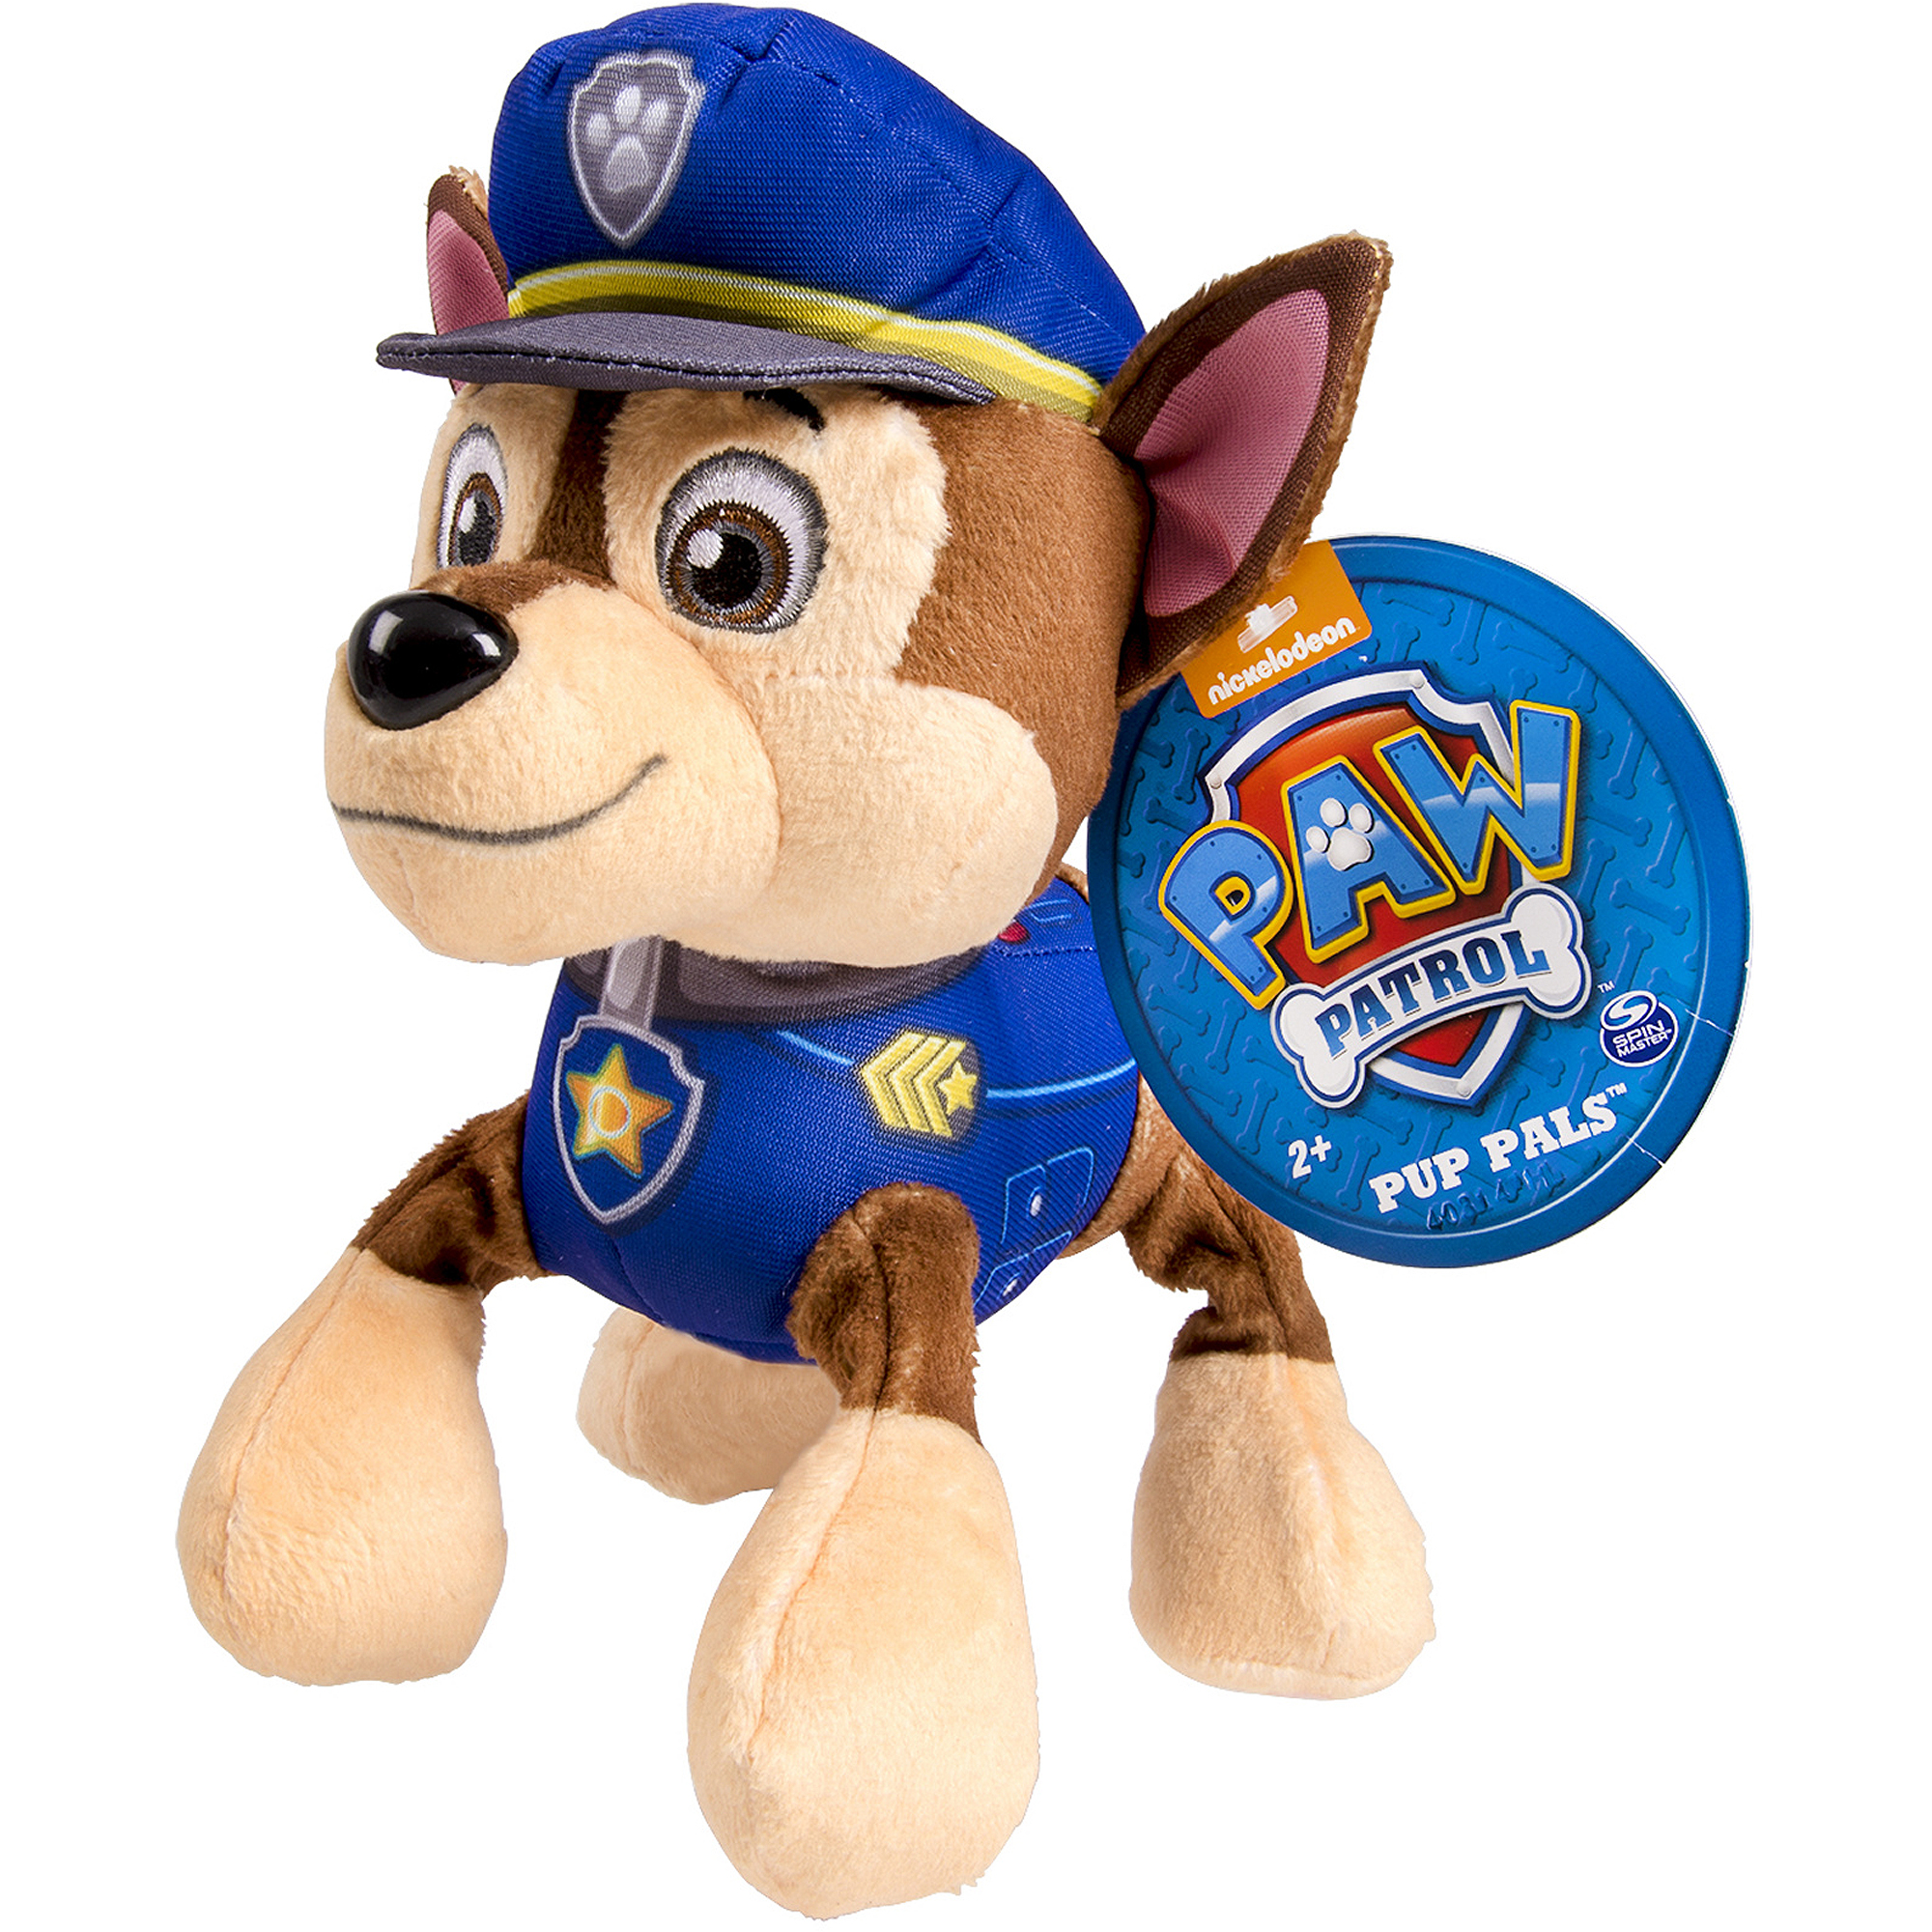 Paw patrol clipart chase vector free download Nickelodeon Paw Patrol - Plush Pup Pals- Chase - Walmart.com vector free download